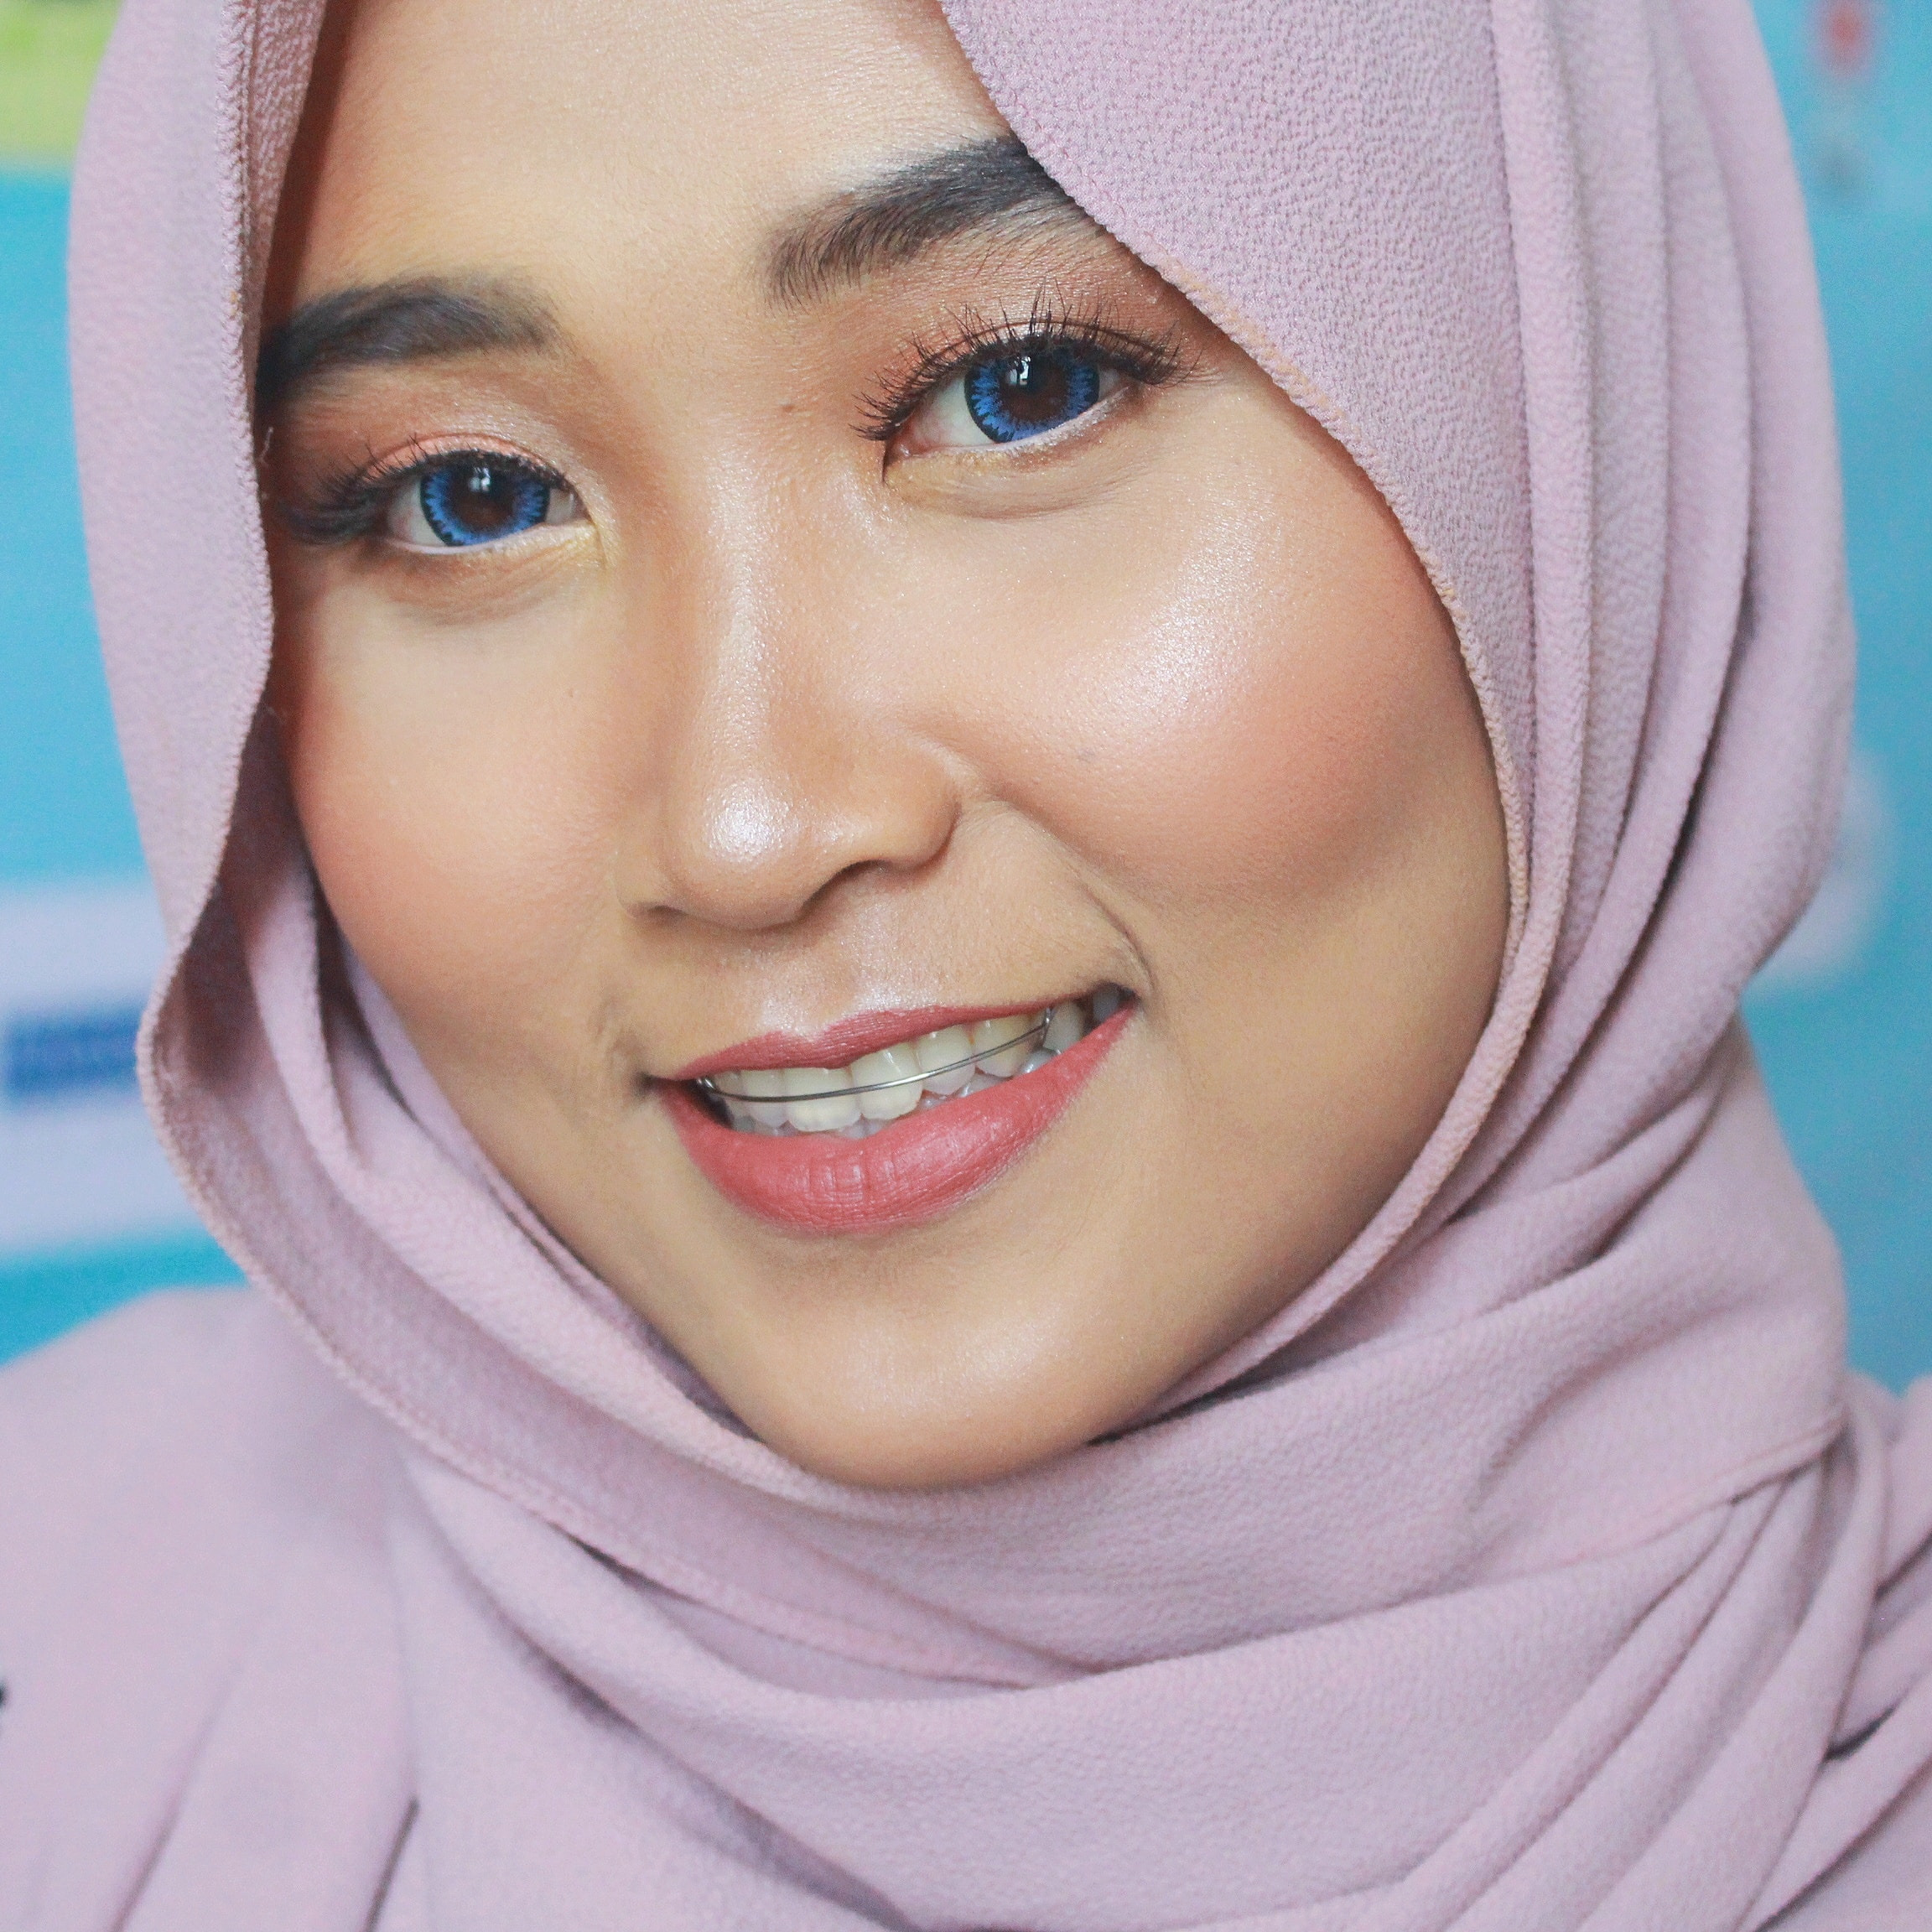 Review Make Over Ultra Cover Liquid Matt Foundation Shade 04 Amber 33 Ml Ayu Indah Trisusilowaty4 Months Ago